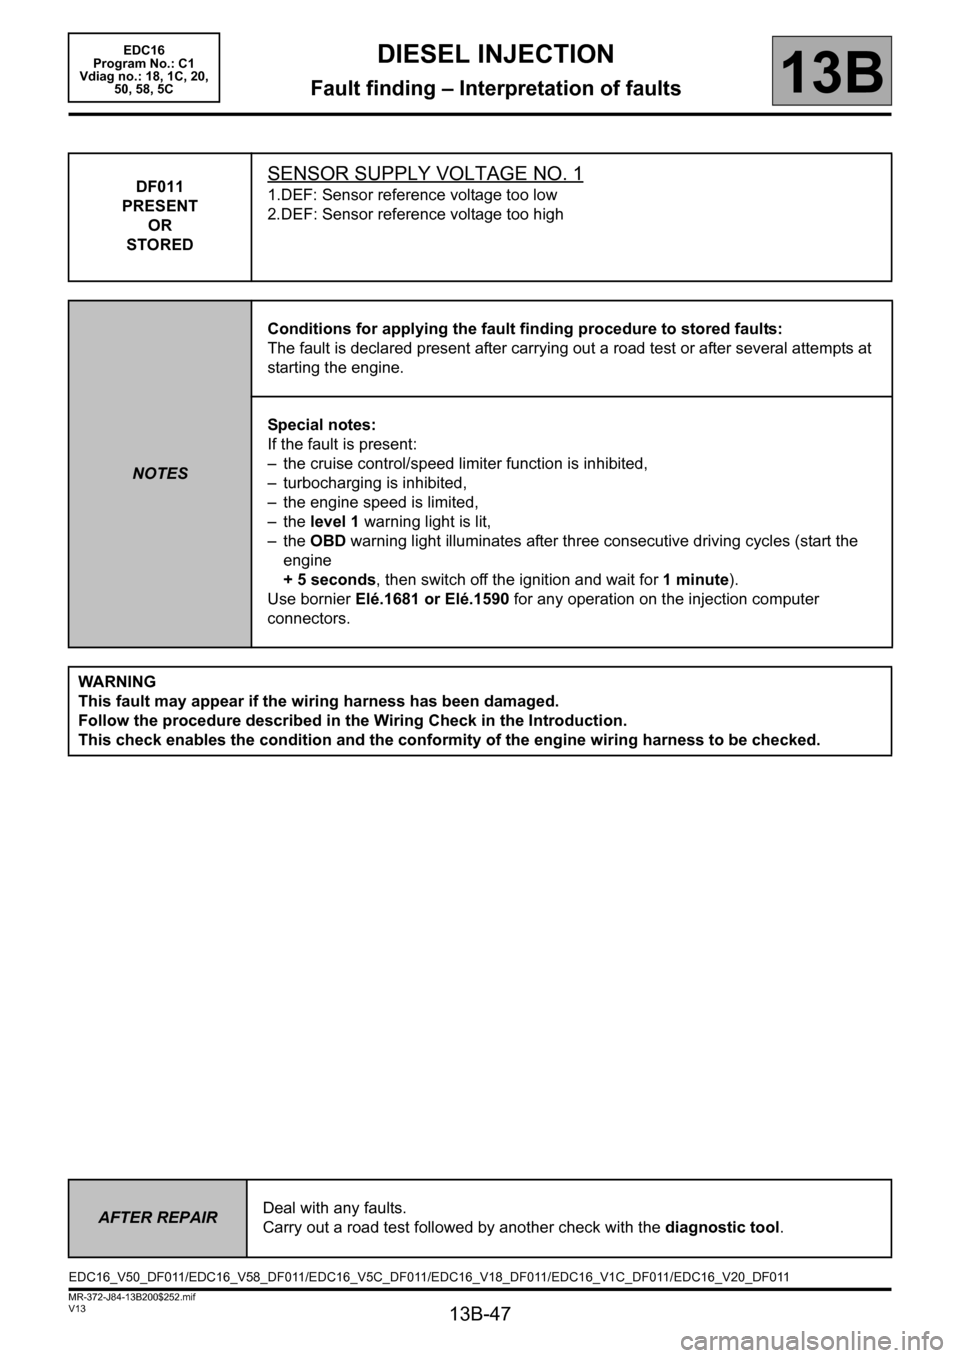 RENAULT SCENIC 2011 J95 / 3.G Engine And Peripherals EDC16 Workshop Manual, Page 47